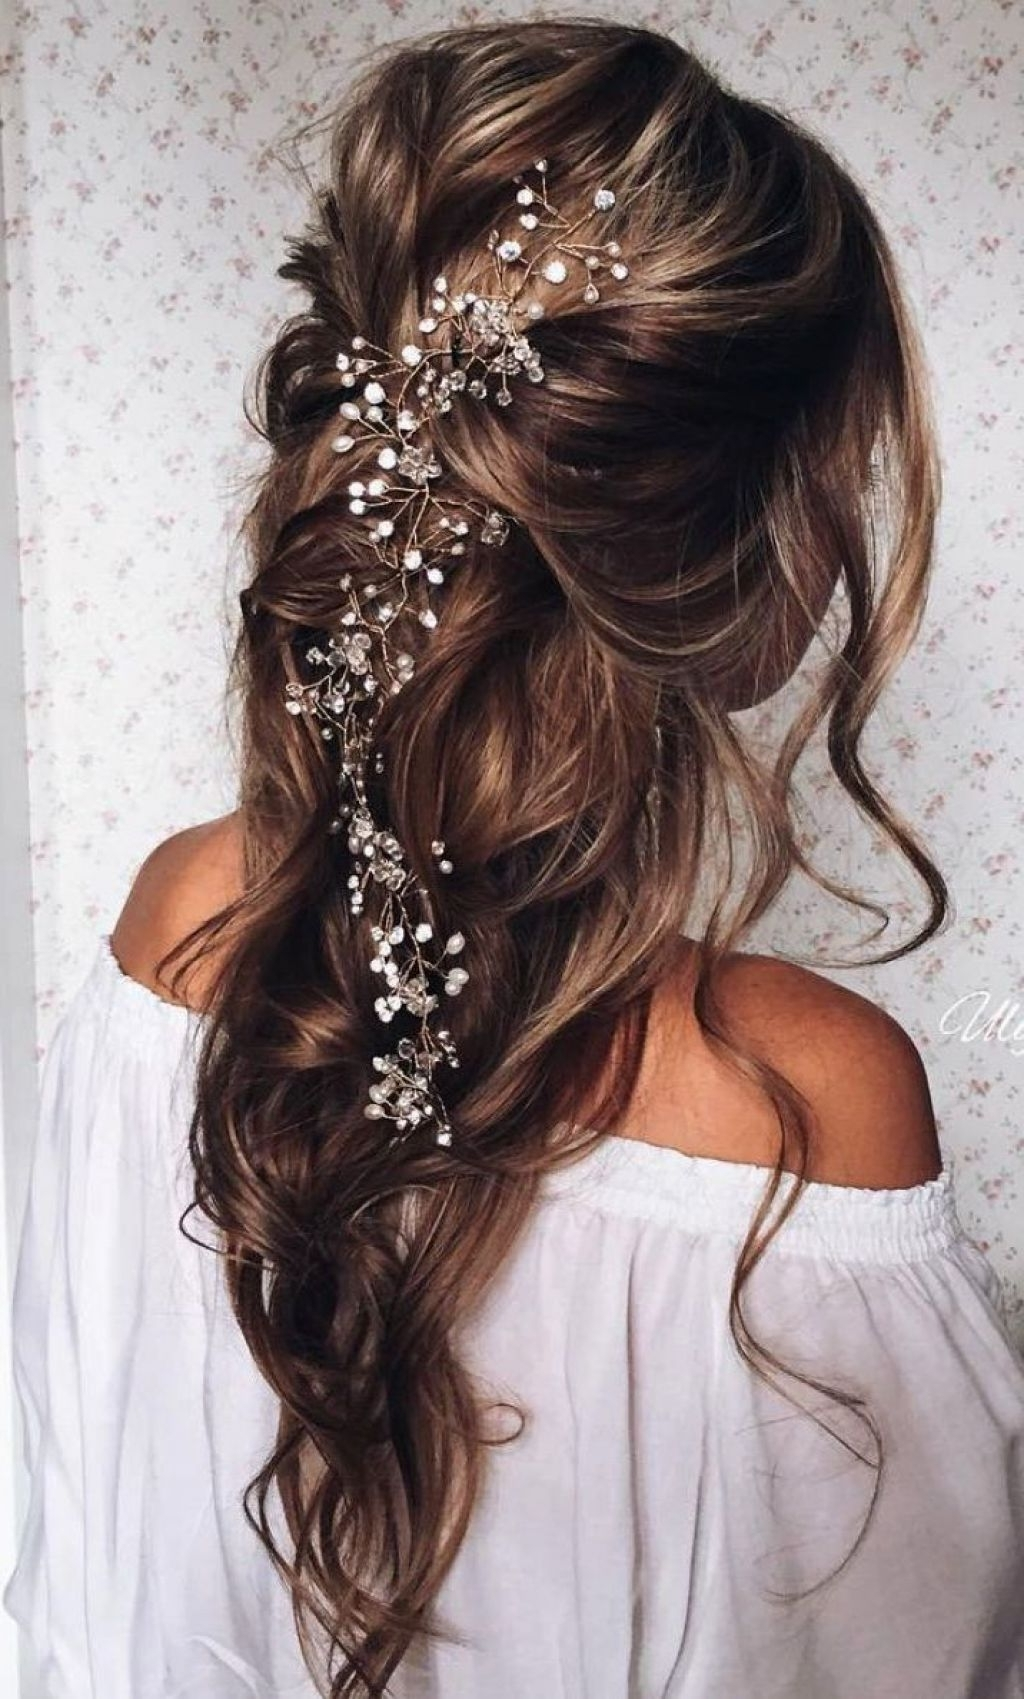 Latest Wedding Hairstyles For Long Hair Down With Flowers Inside √ 24+ Fresh Wedding Hairstyles For Long Hair Down: Wedding (View 4 of 15)